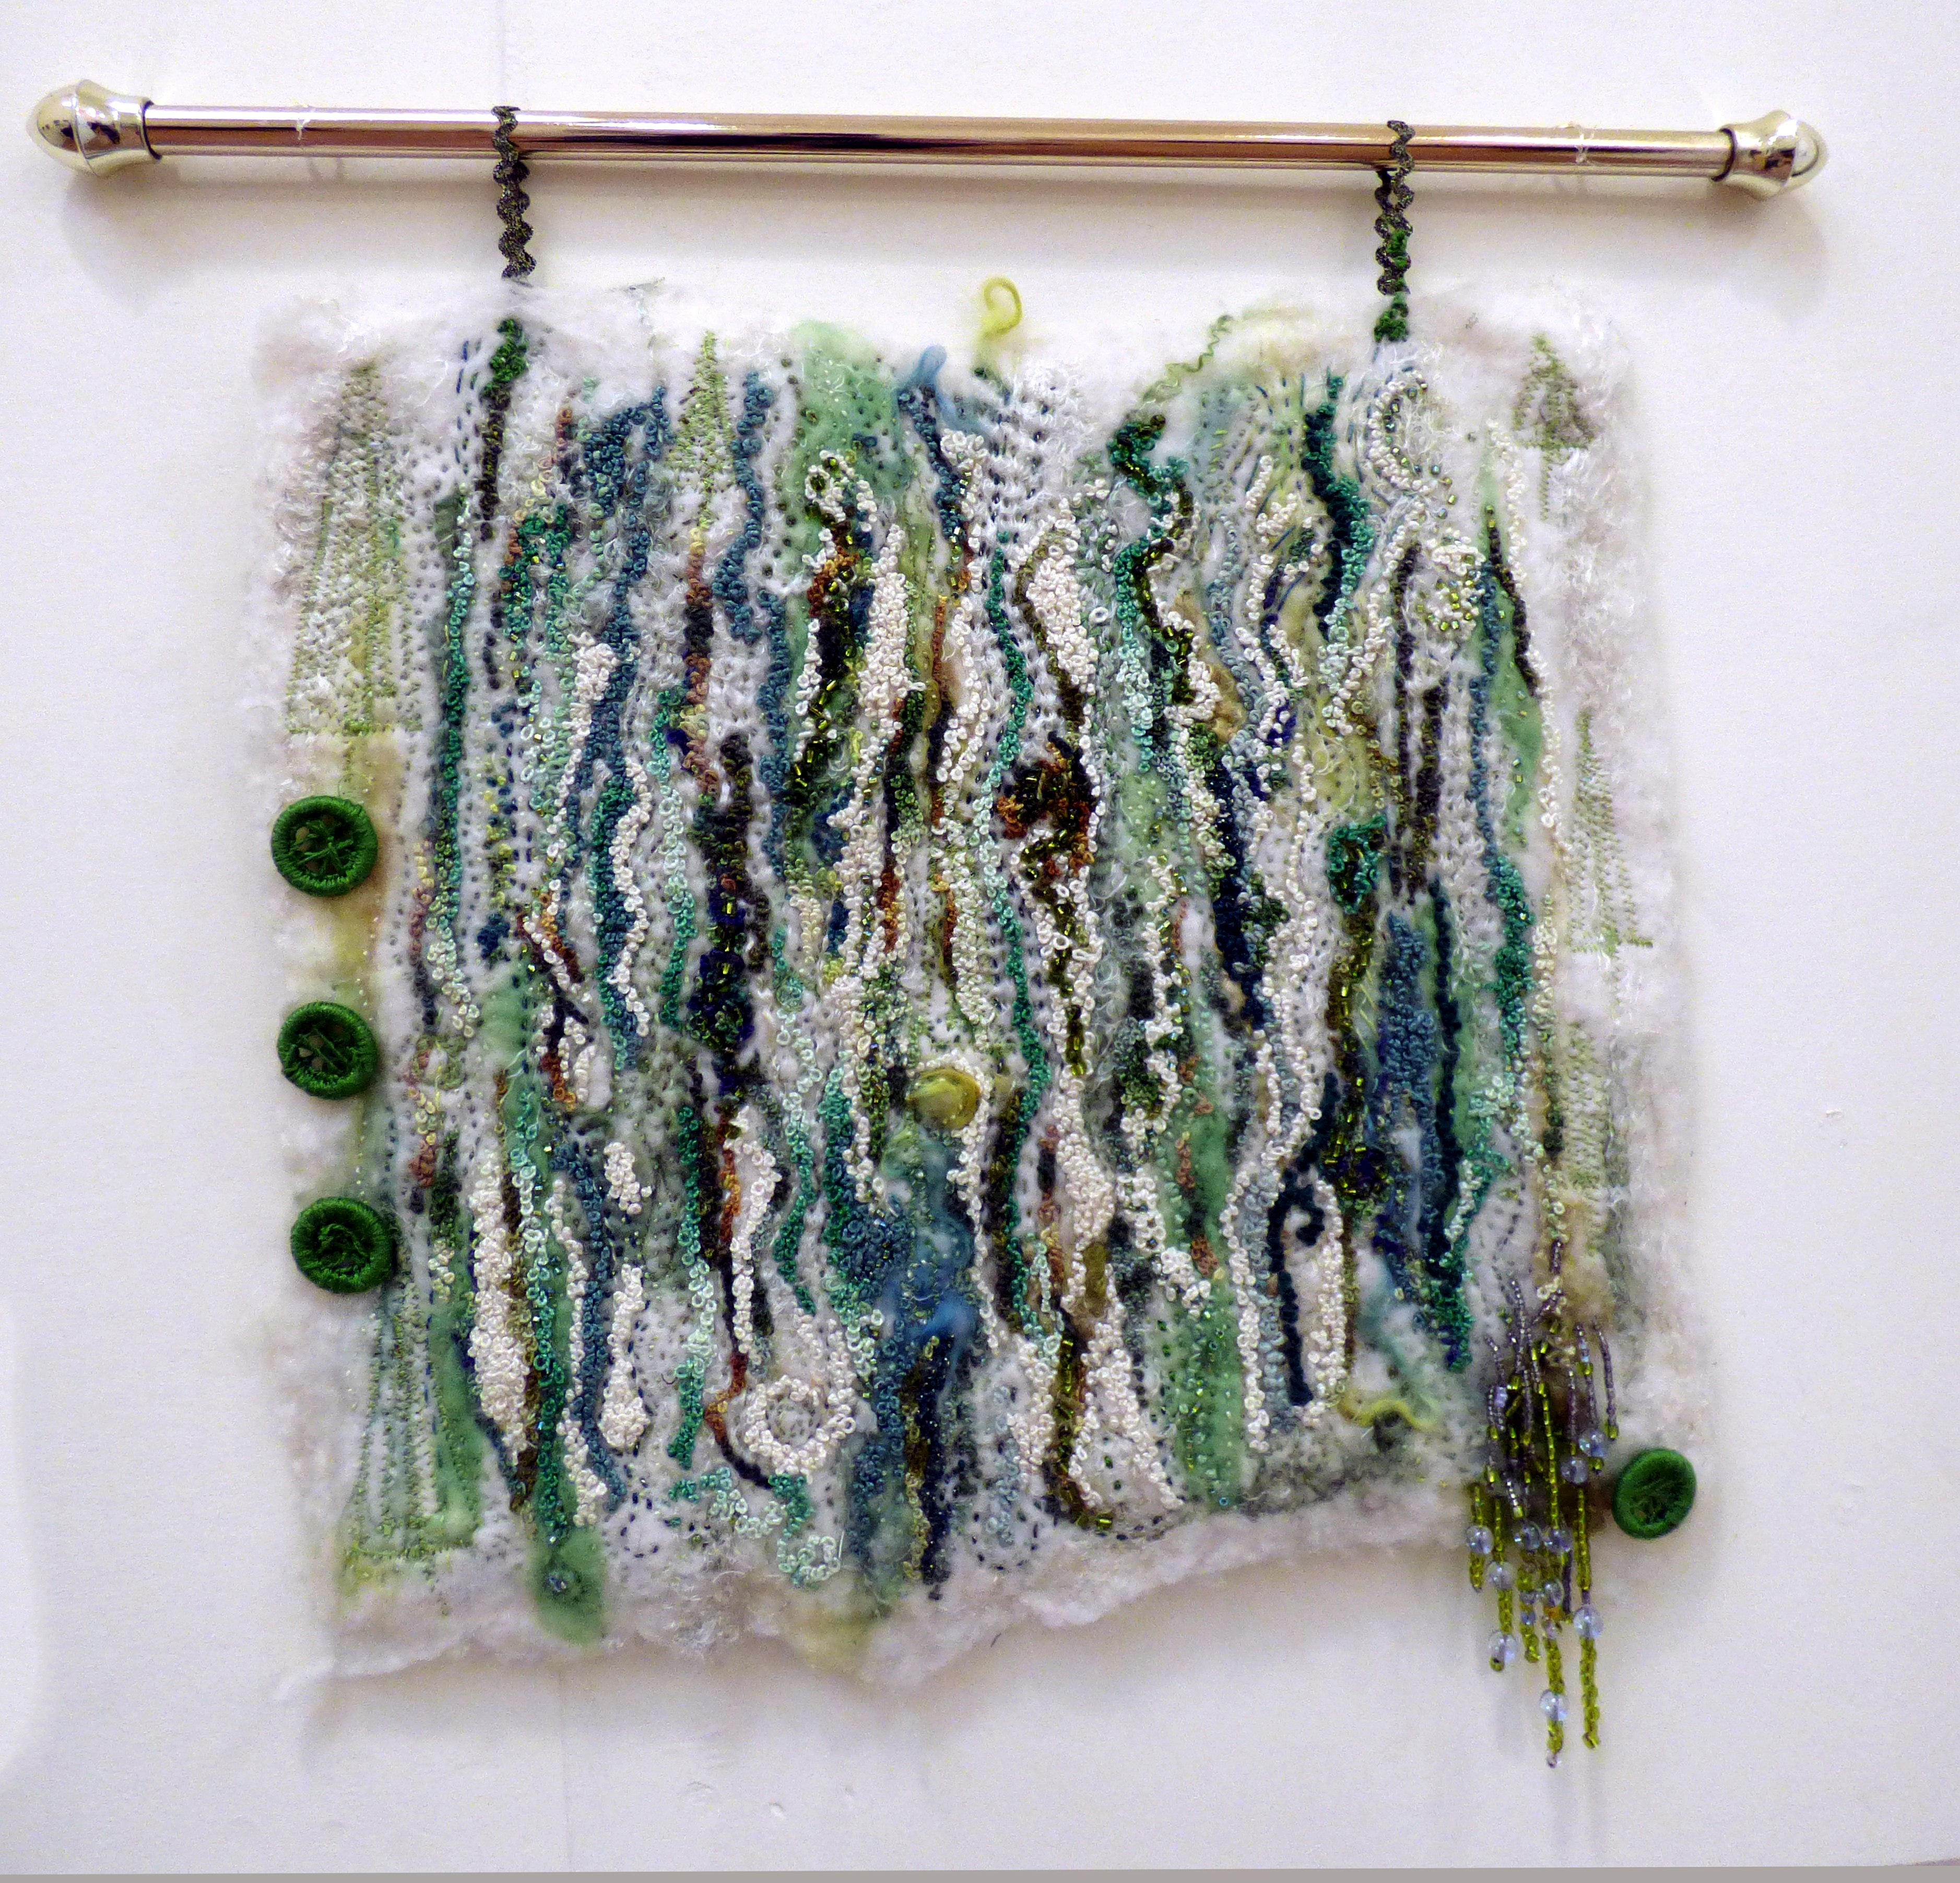 GARDENS-A BIRD'S EYE VIEW by Catherine Leighton, Macclesfield & district EG, hand stitched on handfelted wool tops